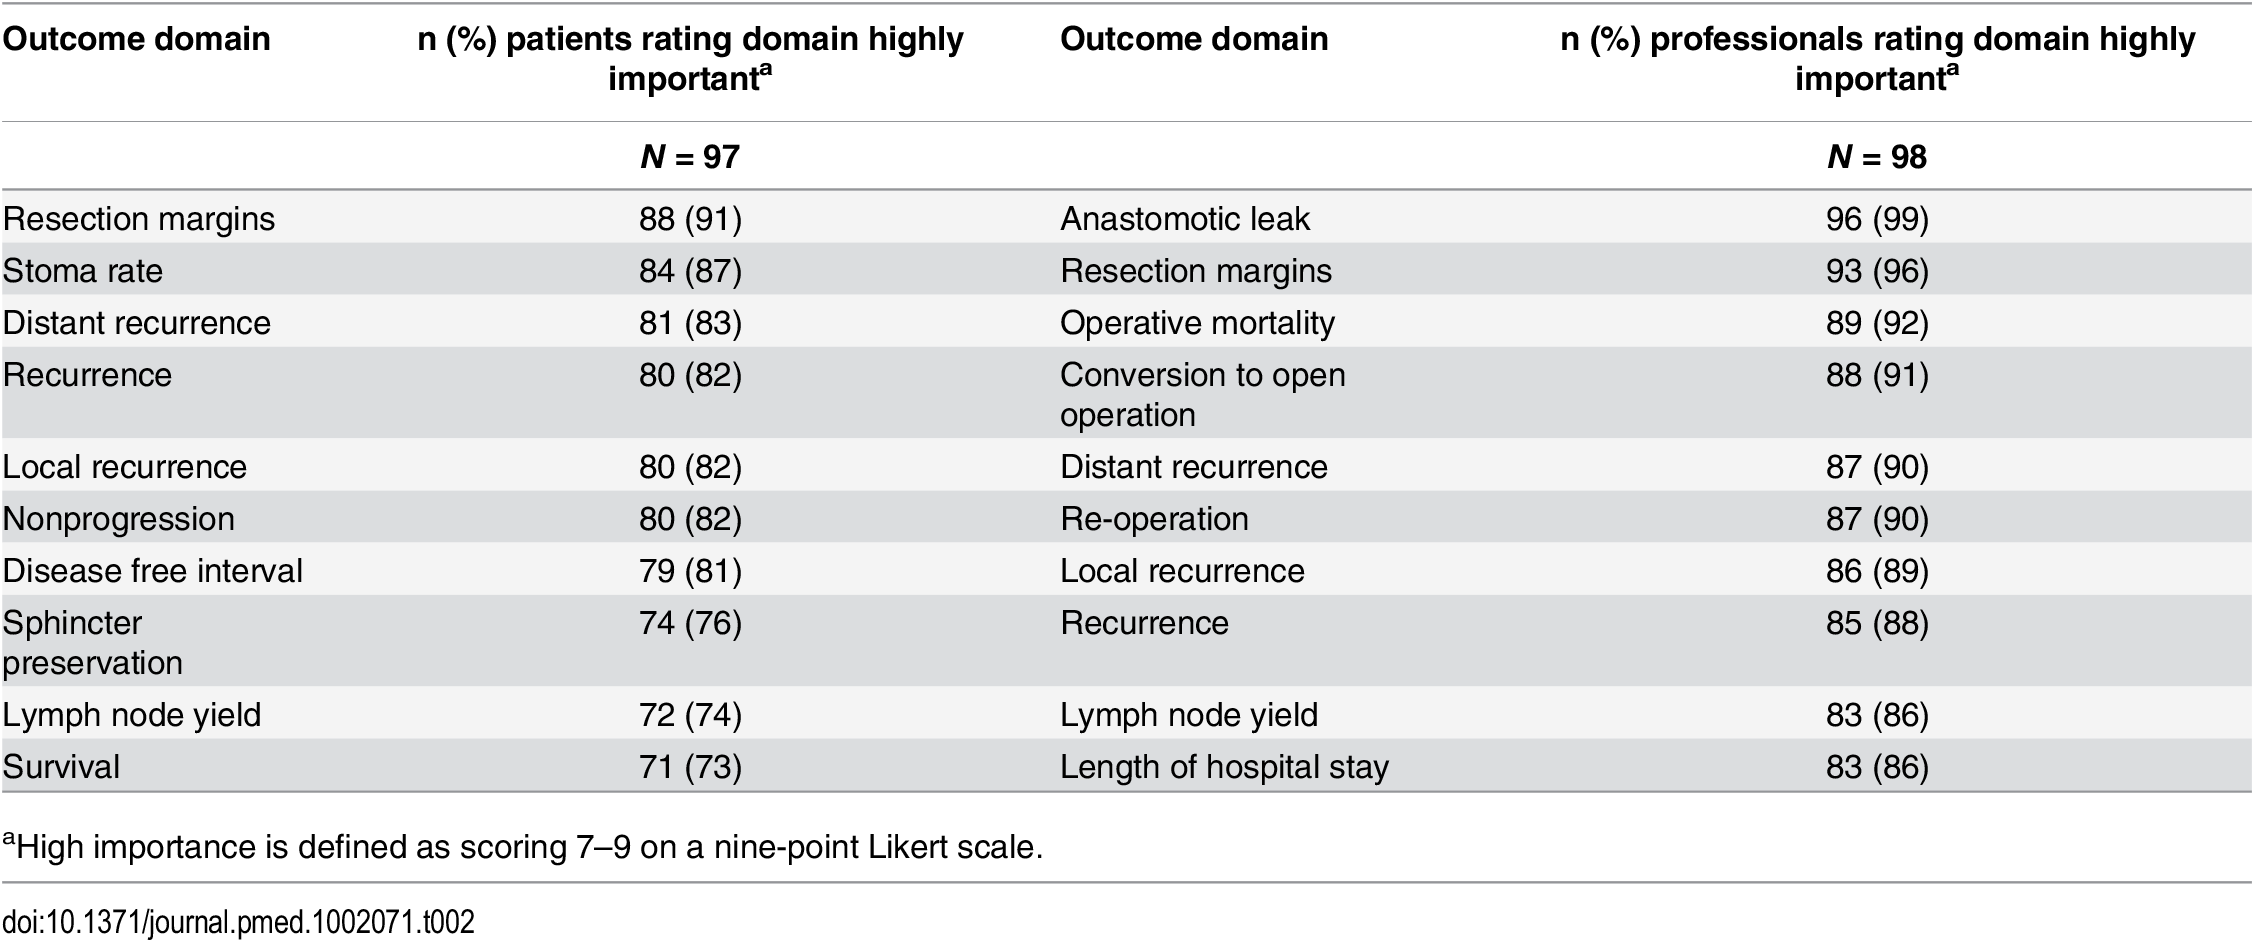 Top ten highest scored outcome domains after Round 1, by stakeholder group.